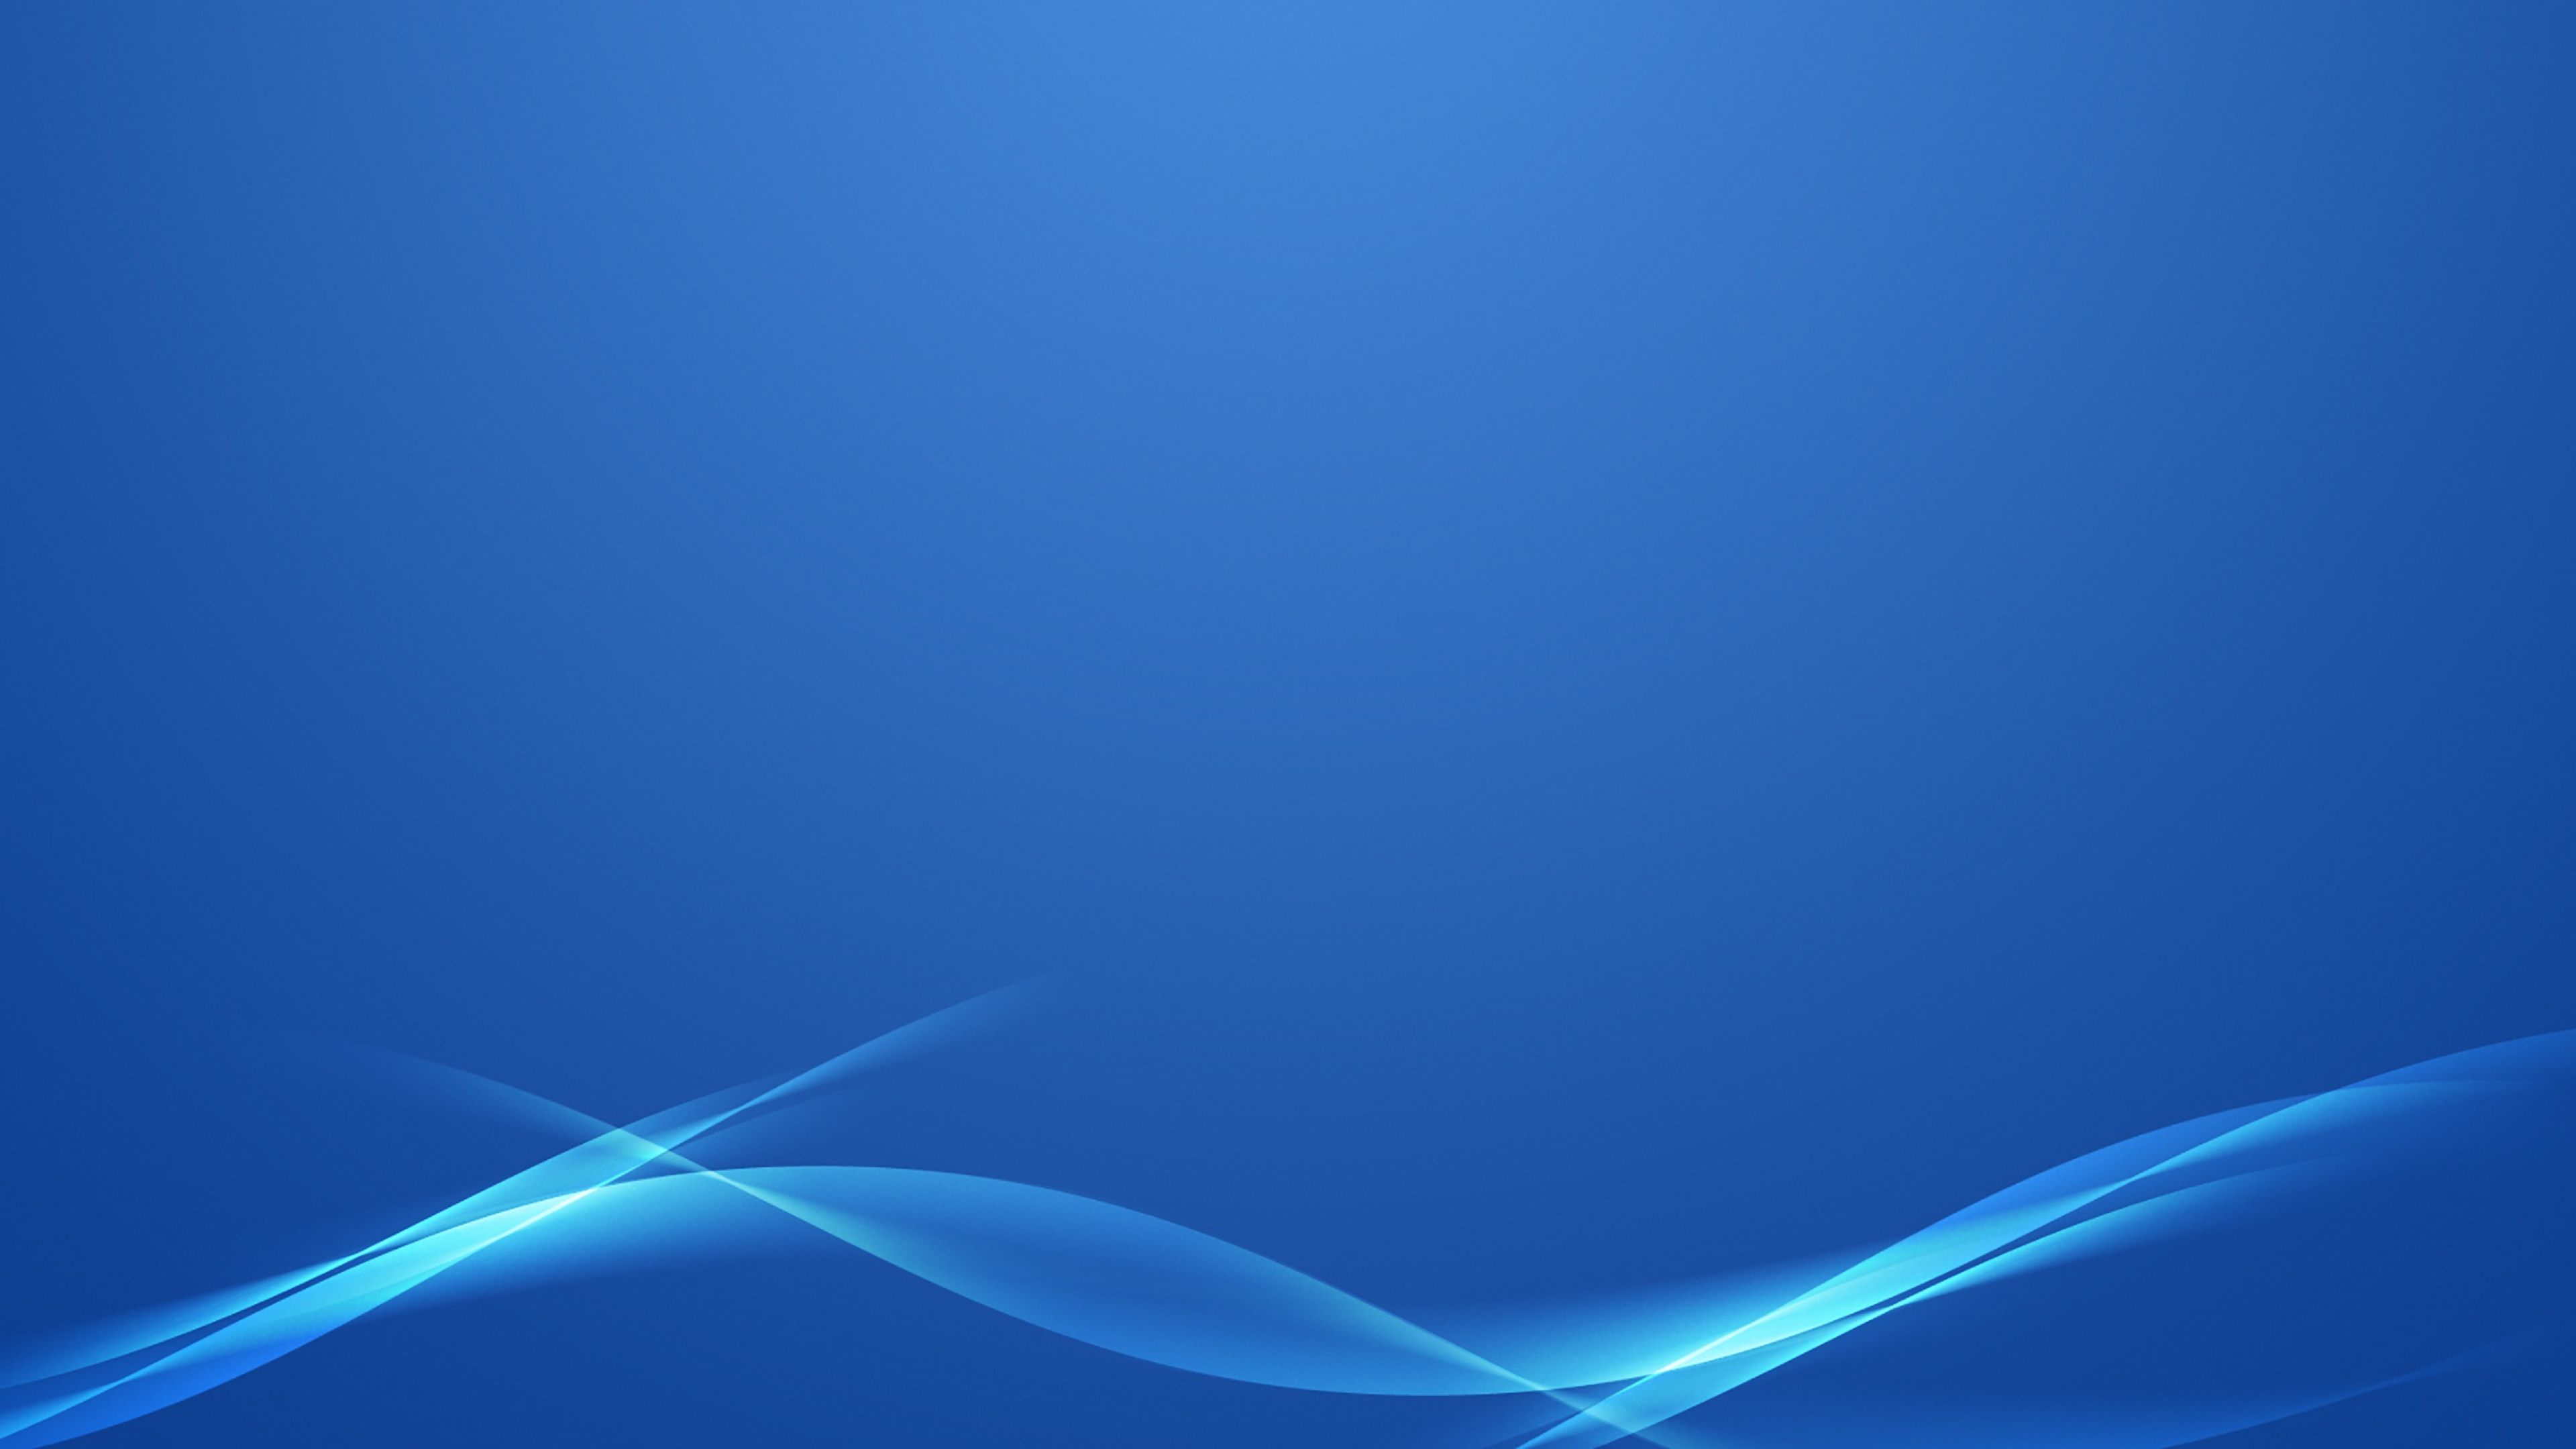 Img_blue_3840x2160.png